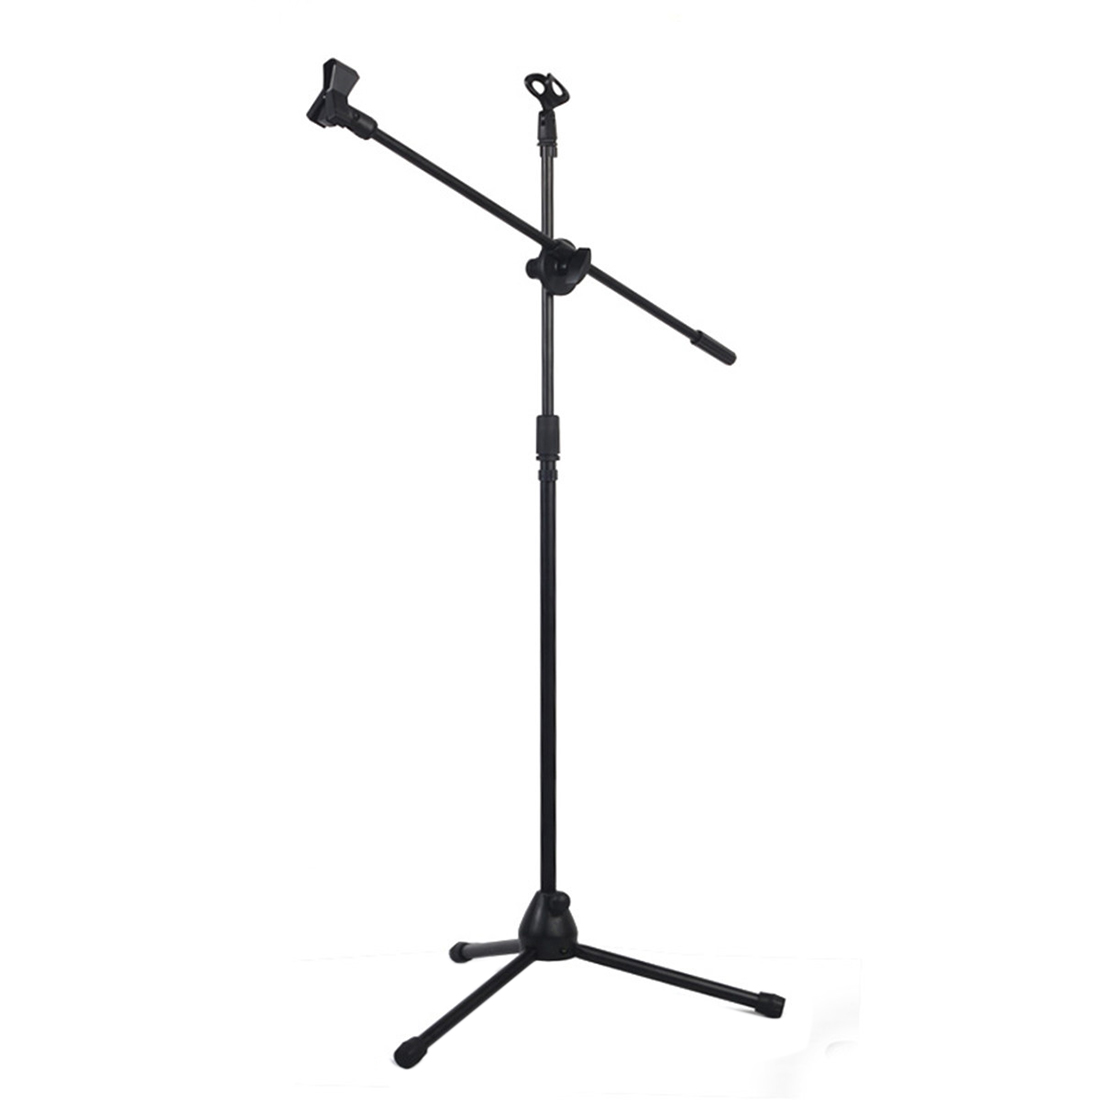 Professional Swing Boom Floor Stand Microphone Holder mic stand Ajustable Stage Tripod Metal Professional Swing Boom Floor Stand Microphone Holder mic stand Ajustable Stage Tripod Metal